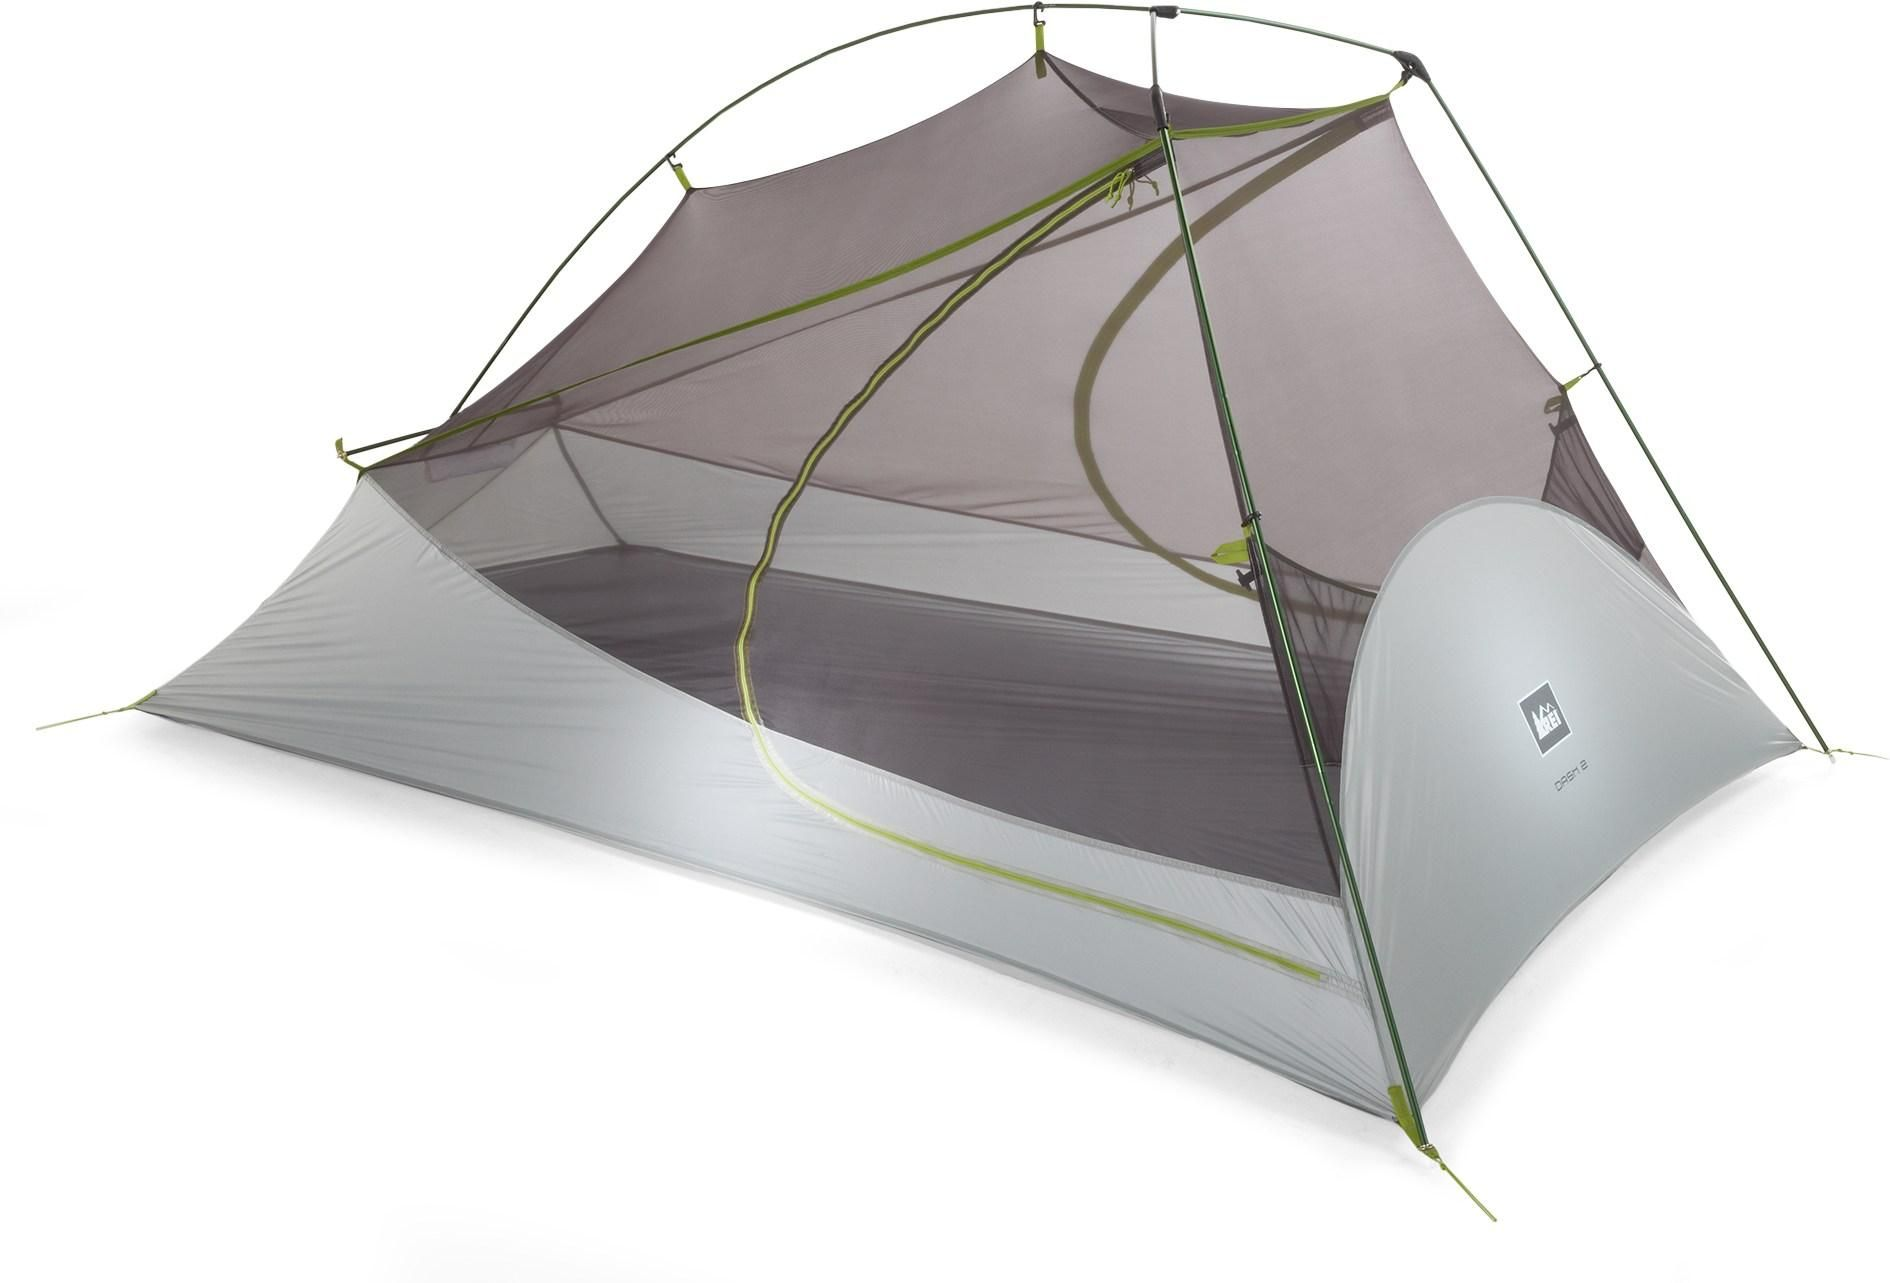 The lightest 2-person tent REI has ever made. 2 lbs. 7 oz  sc 1 st  Pinterest & The lightest 2-person tent REI has ever made. 2 lbs. 7 oz ...